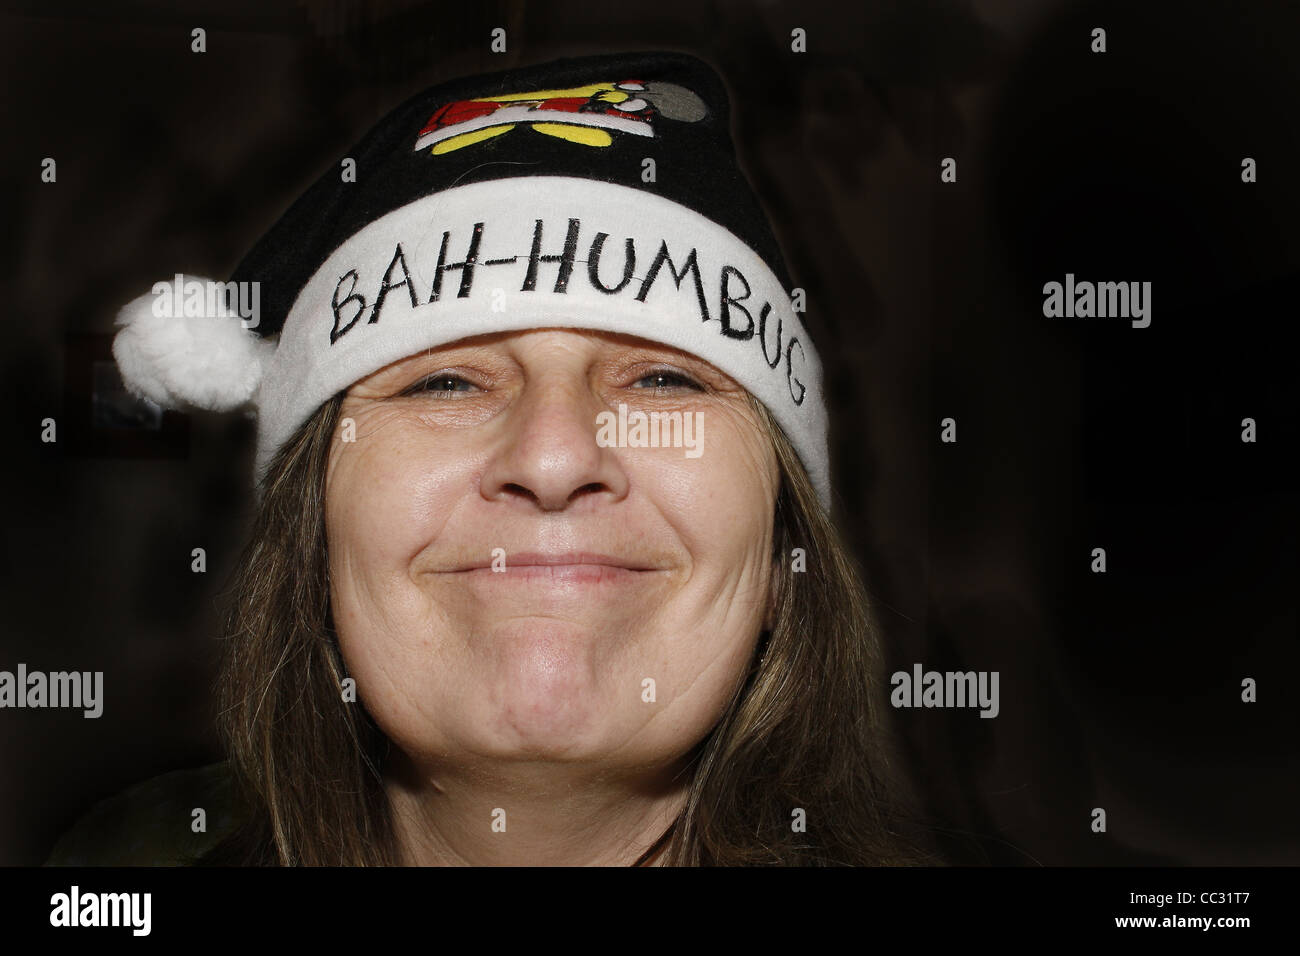 middle-aged woman wearing bah humbug hat Stock Photo